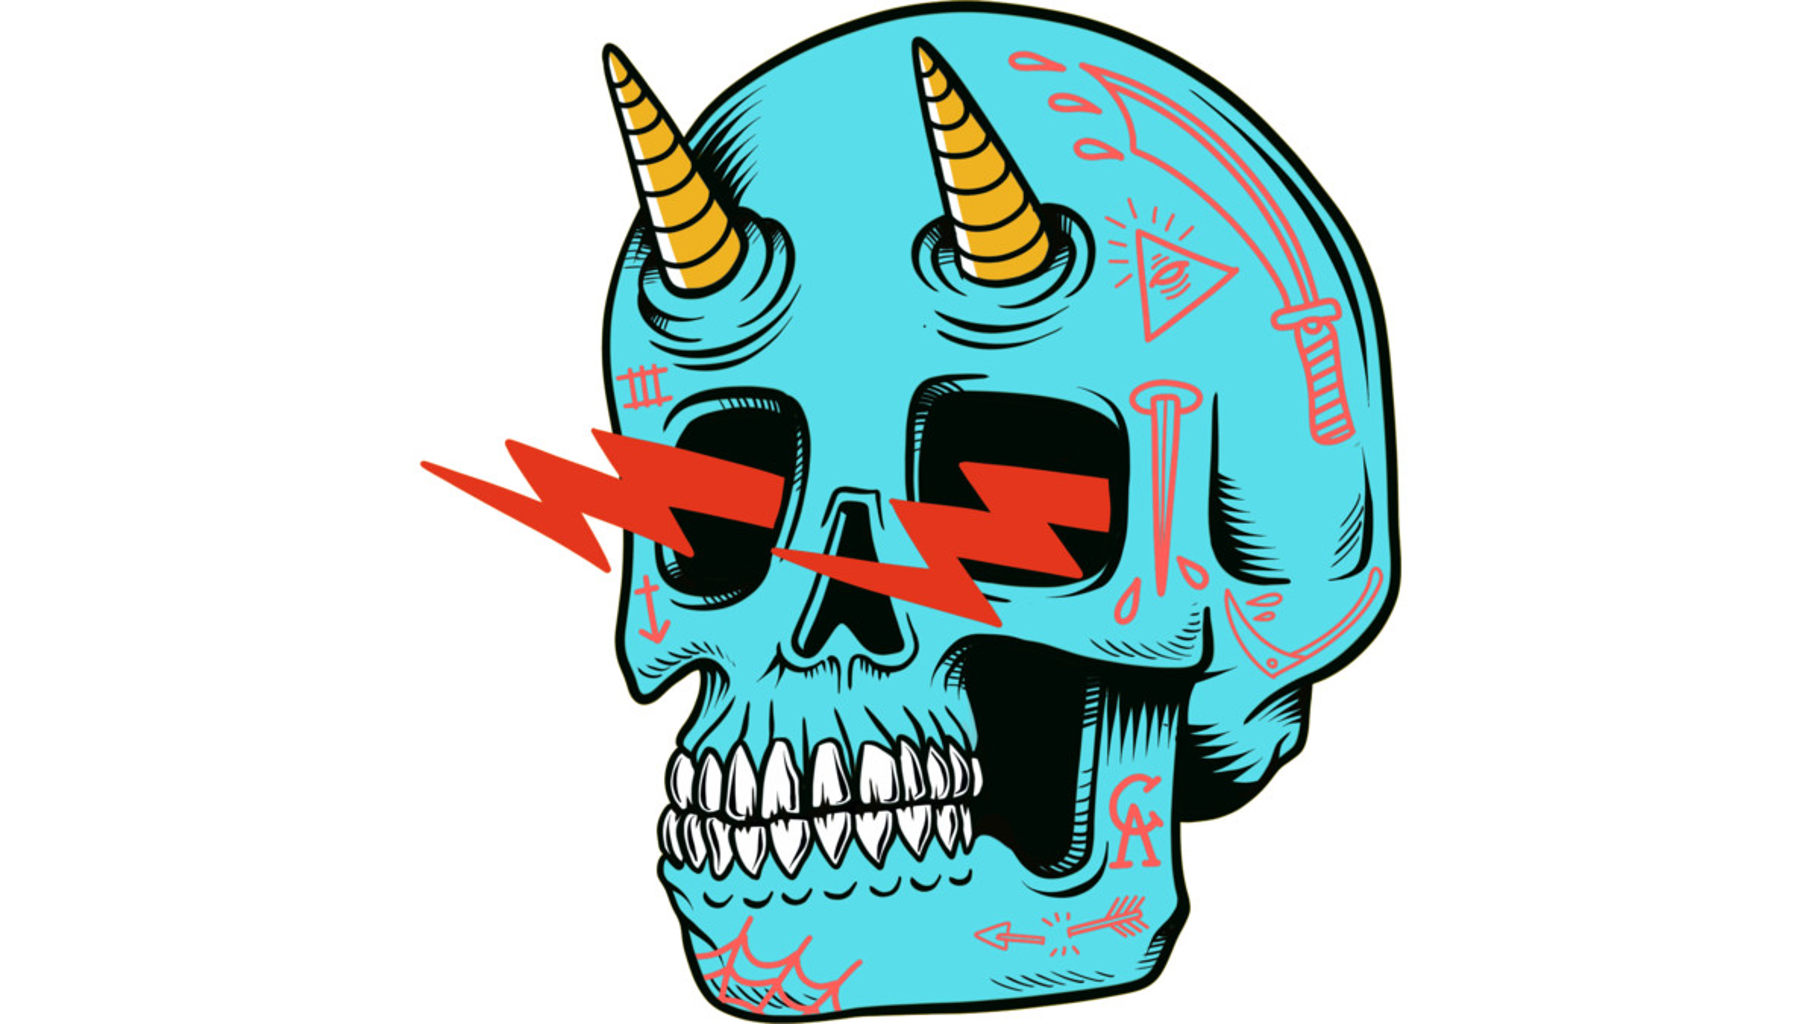 Design by Humans: Zapping devil